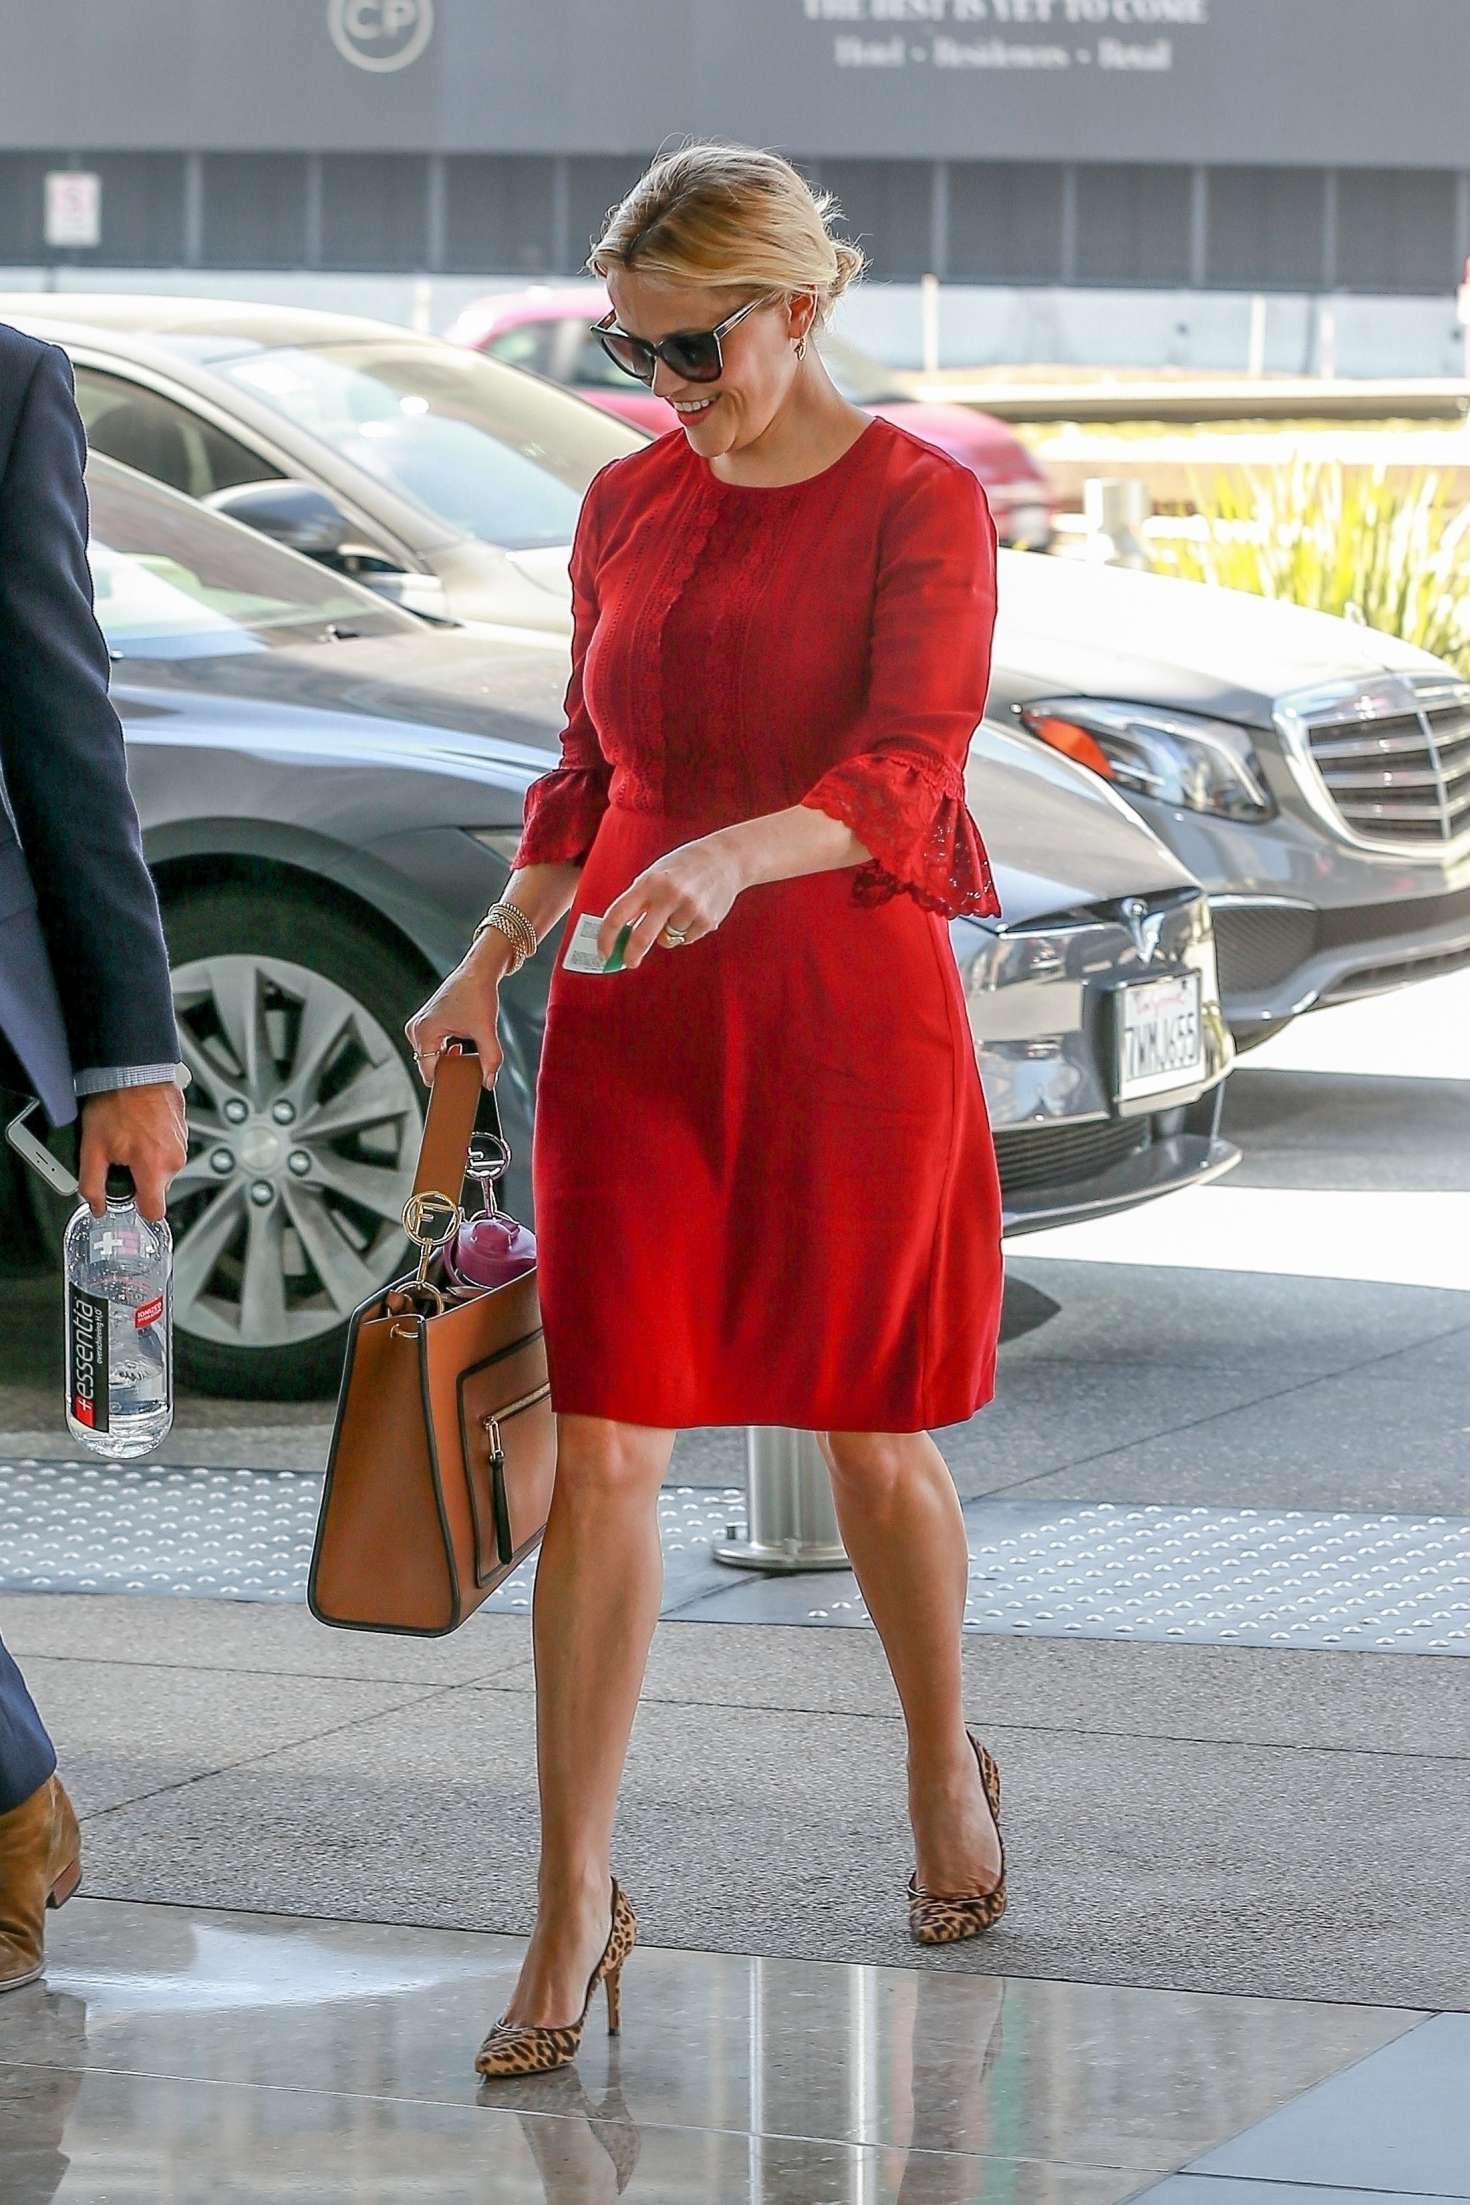 Reese Witherspoon in Red Dress  Out for a Business Meeting in LA